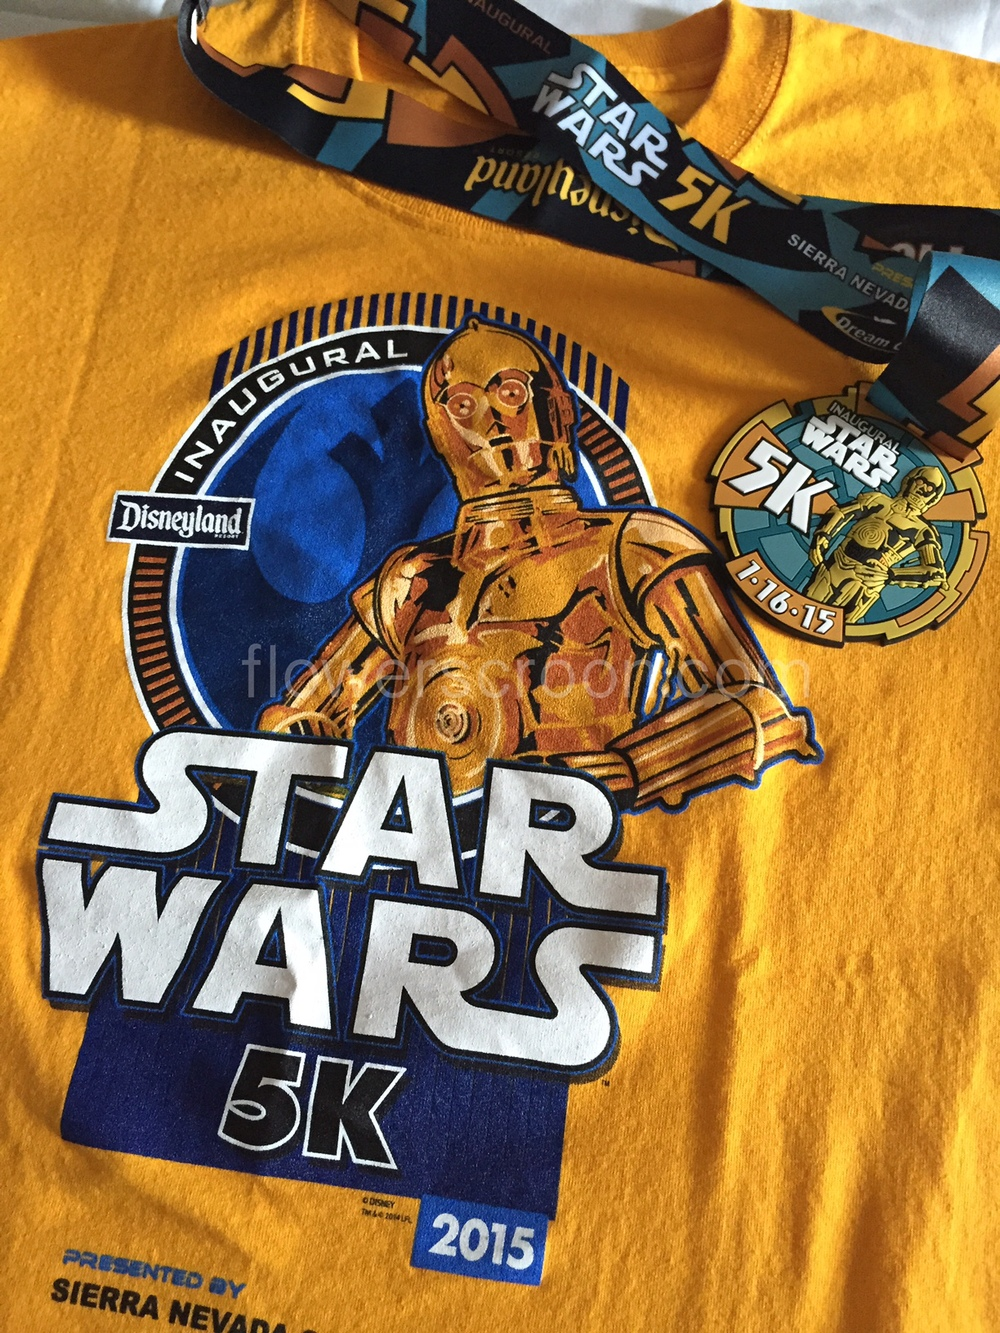 rundisney star wars 5K medal and shirt.jpg